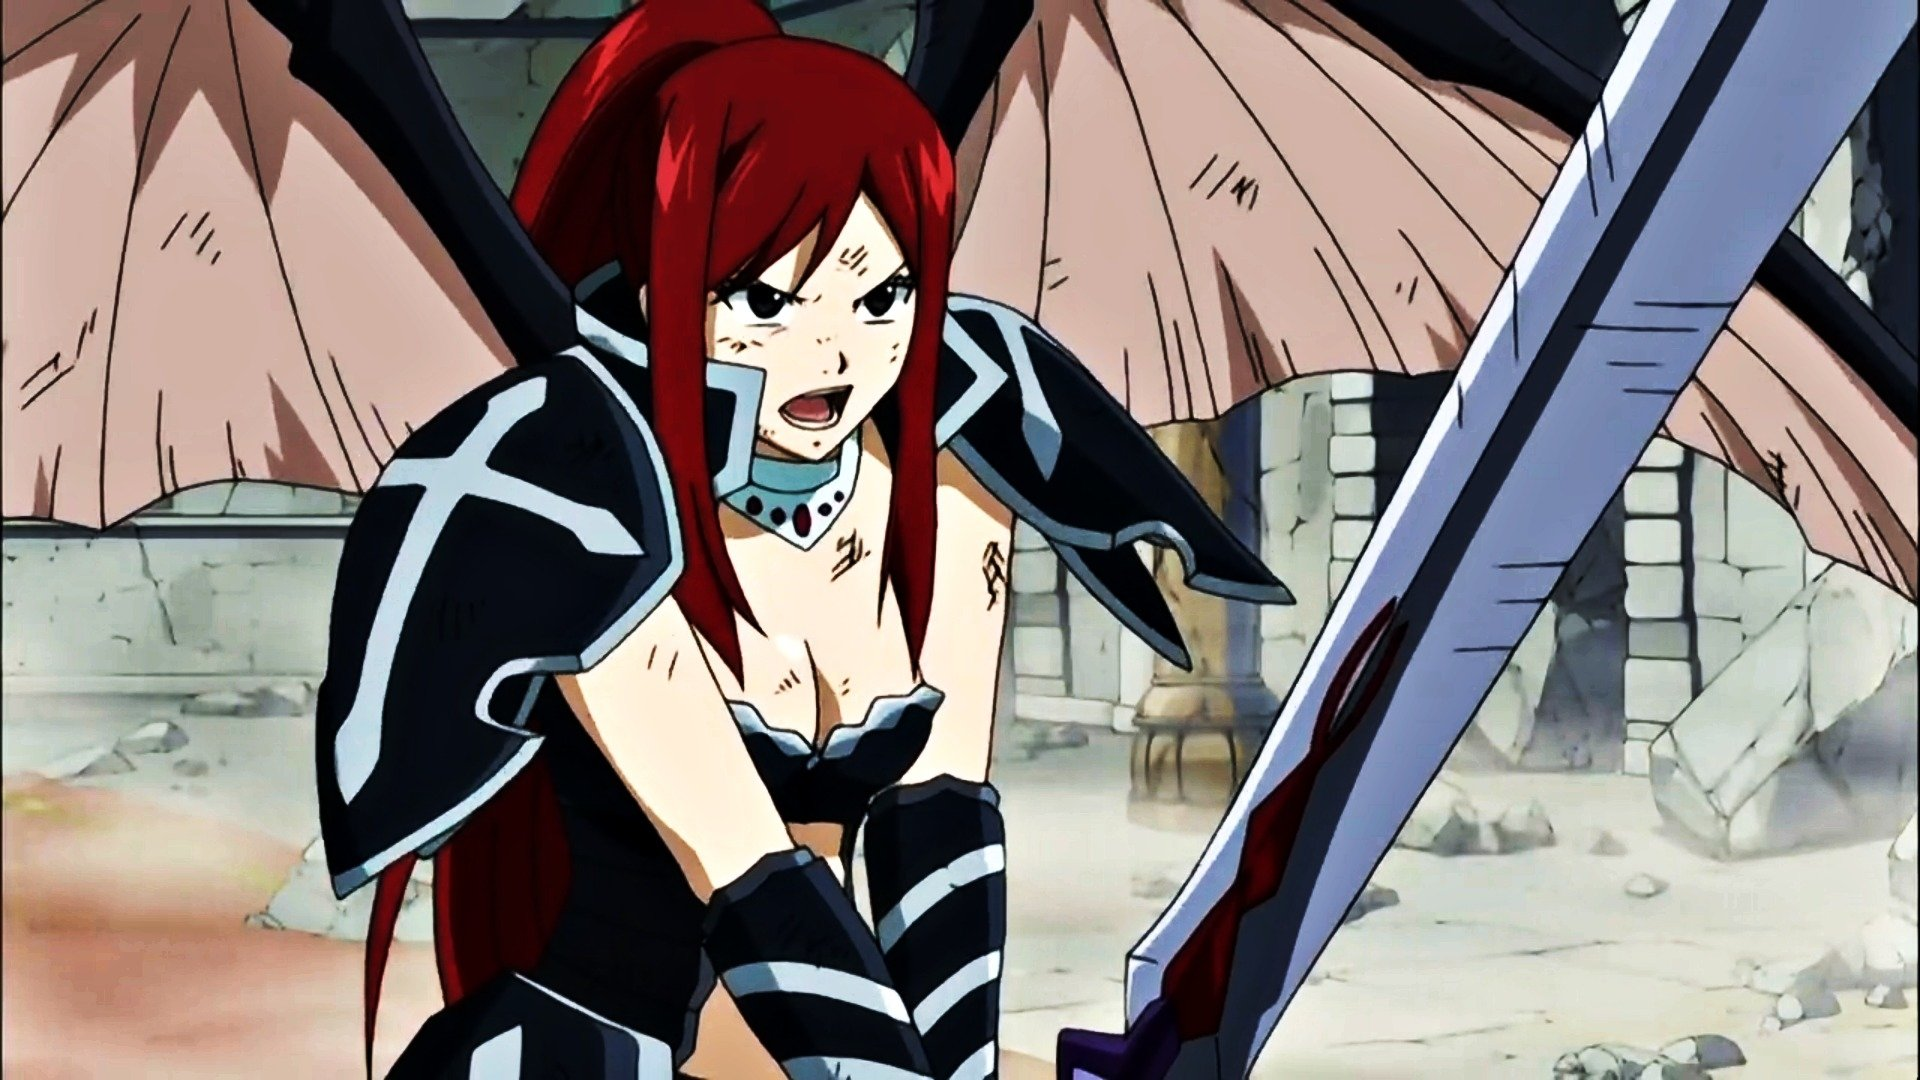 Hd Tough Girls Wallpaper Erza Scarlet Full Hd Wallpaper And Background Image